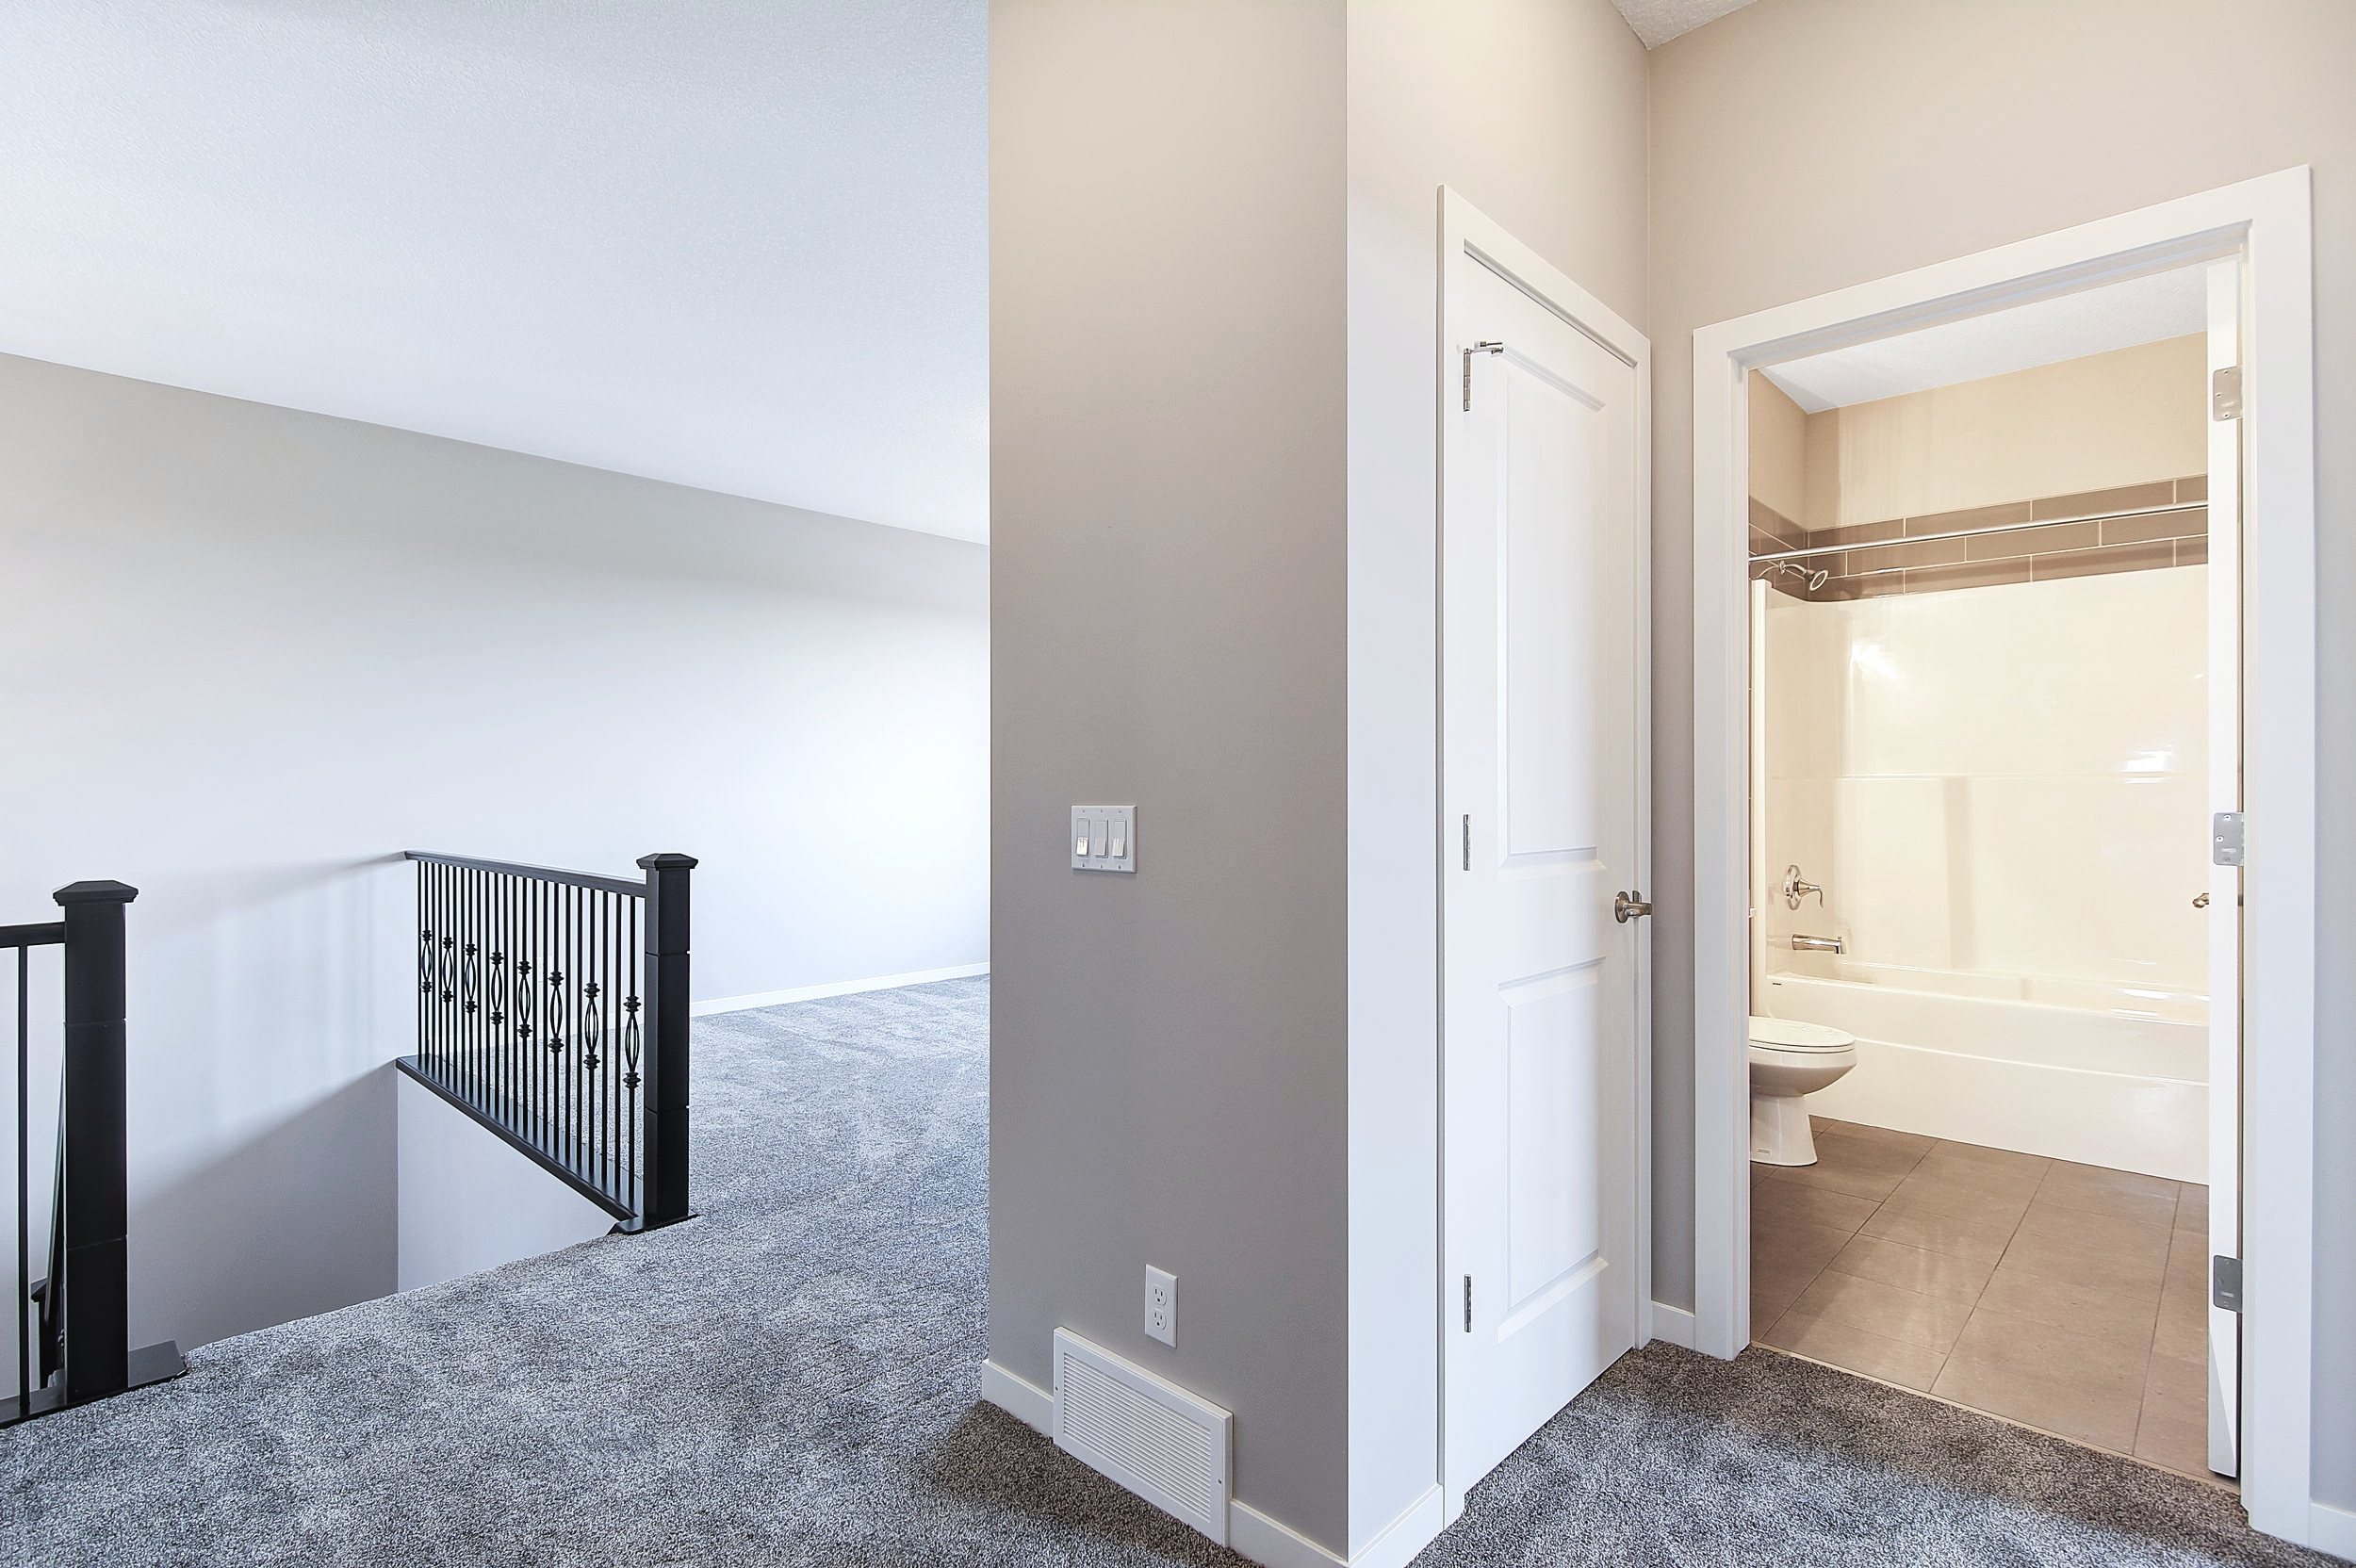 23-upper view into bathroom and bonus room-1.jpg